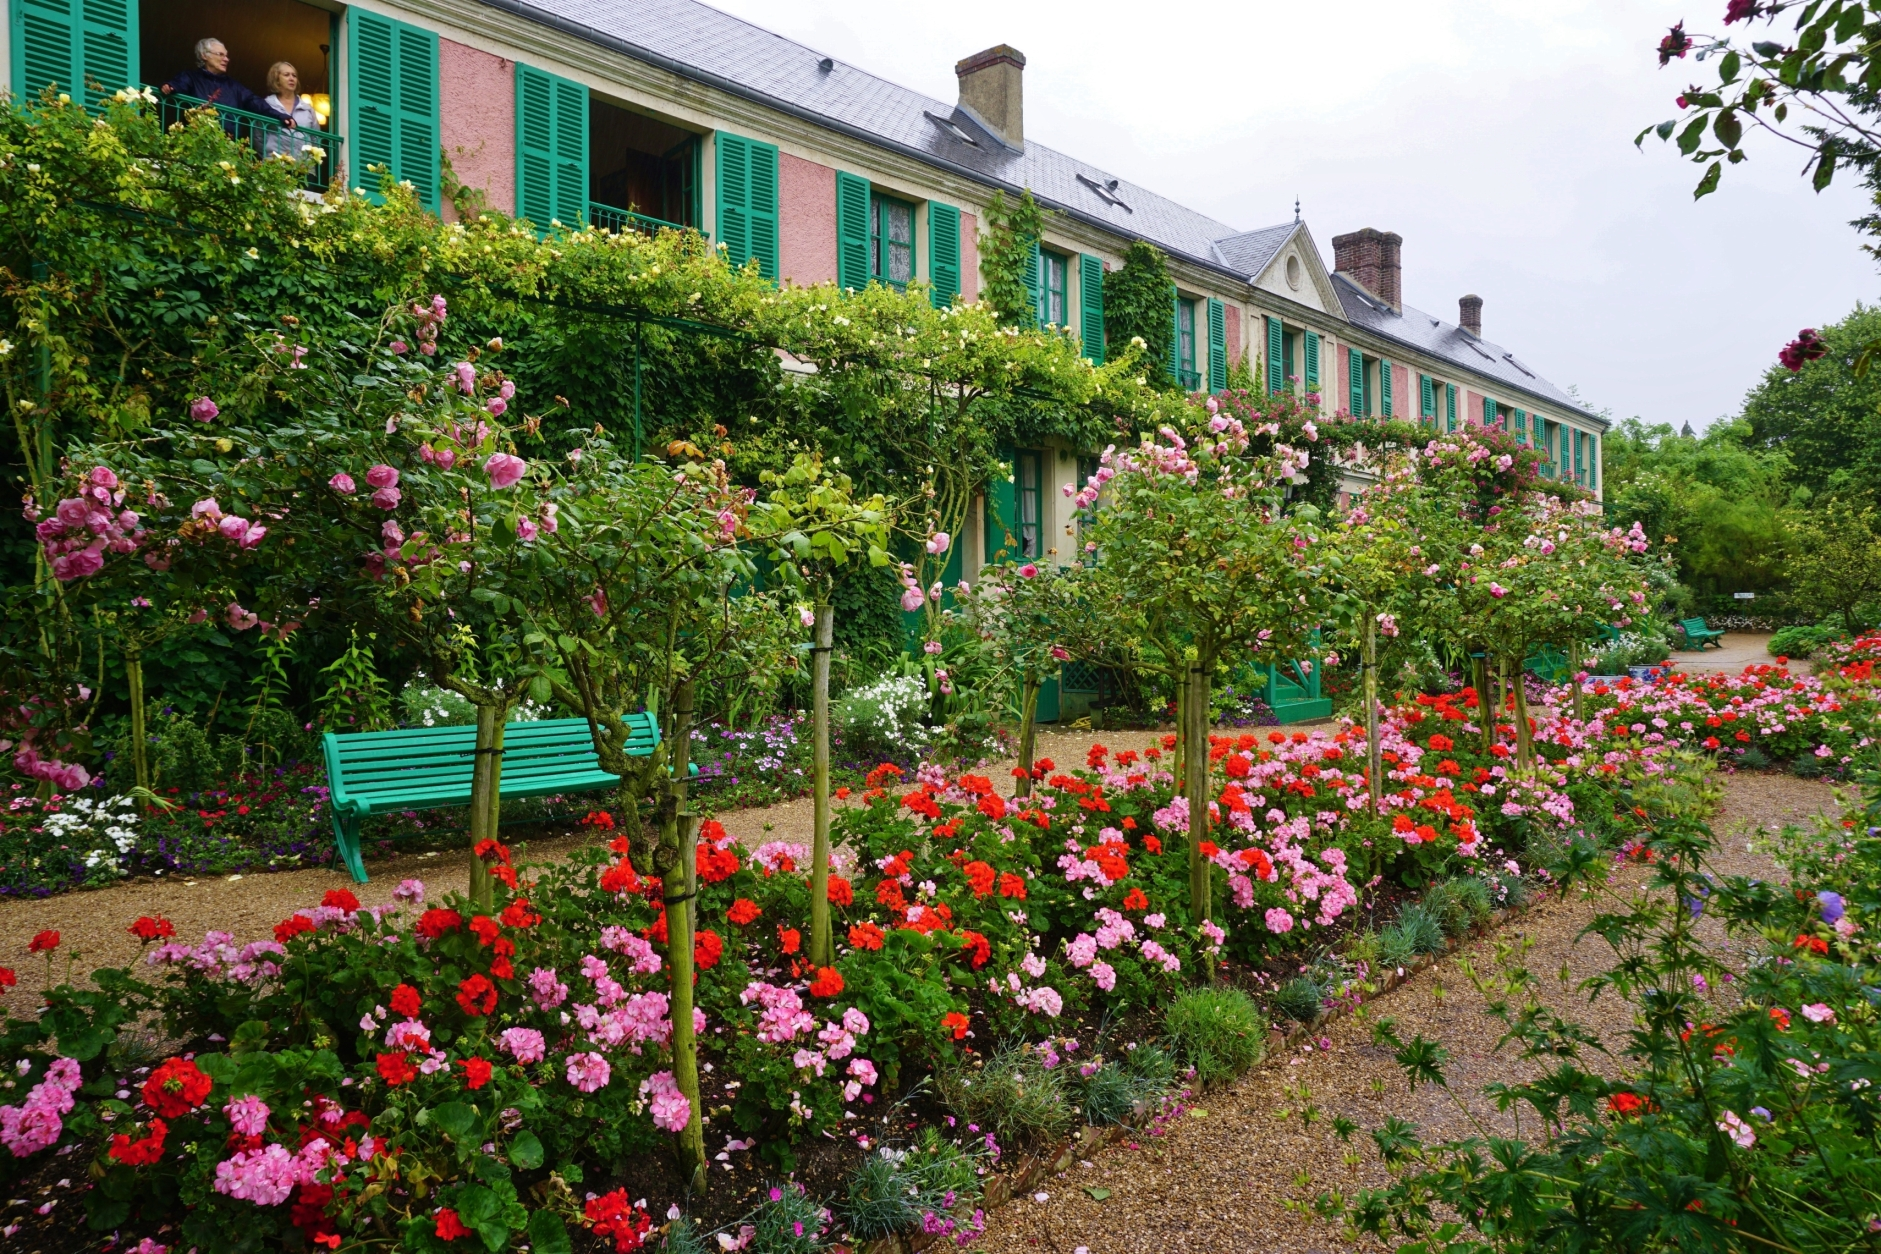 Maison Et Jardins De Claude Monet Giverny France Giverny